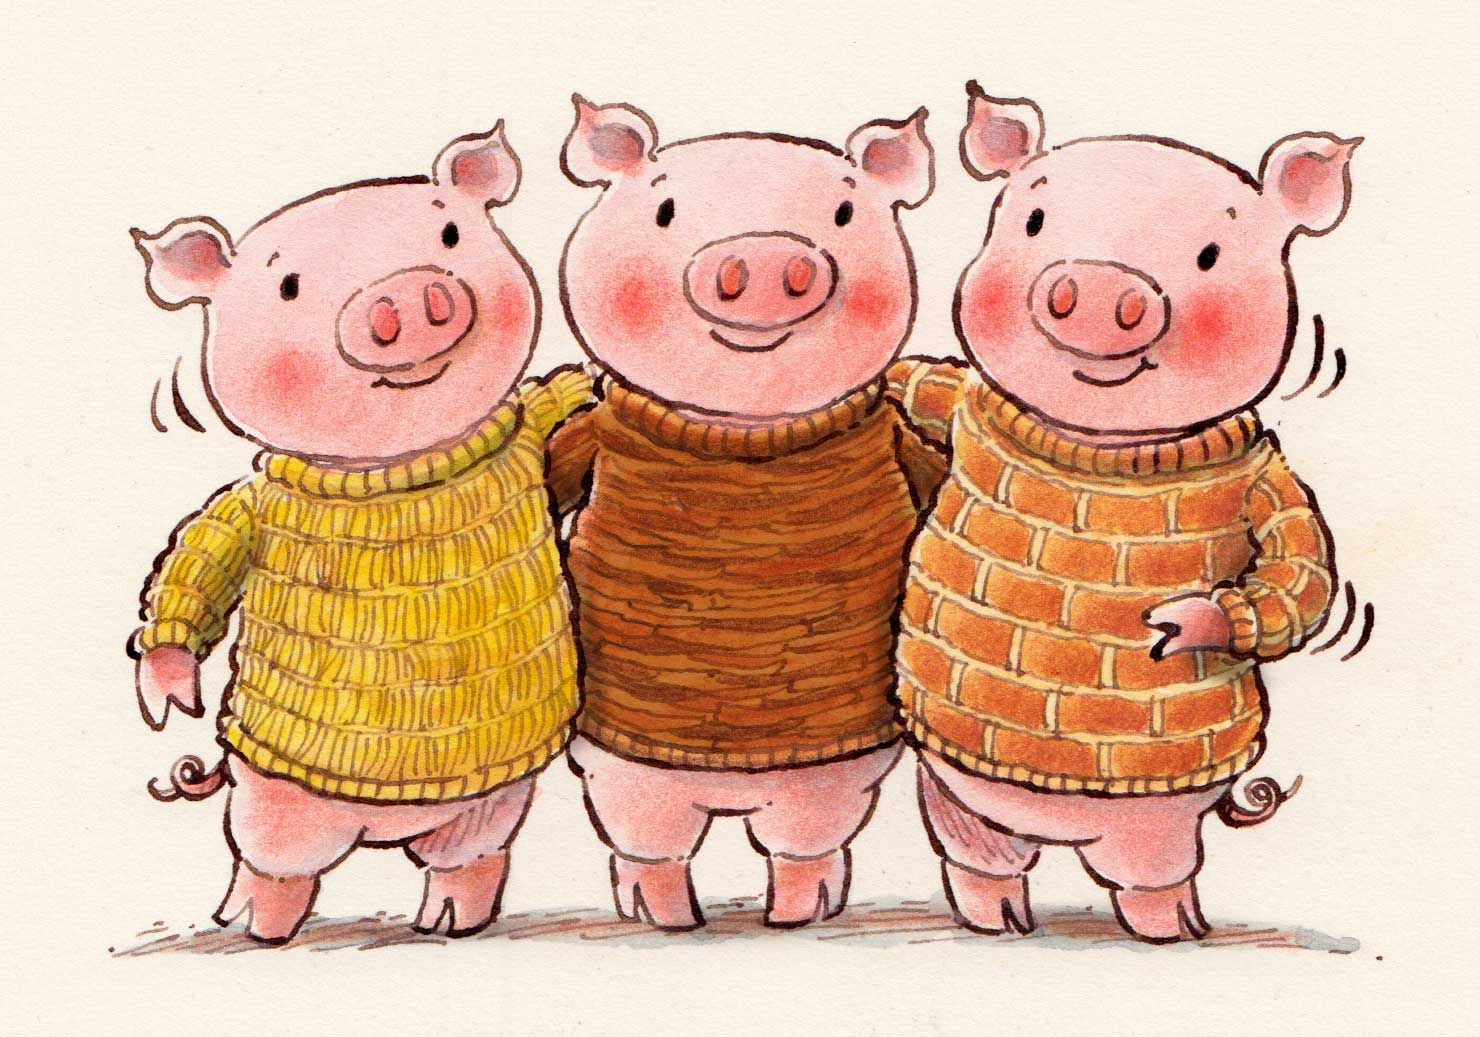 three little pigs drawing at getdrawings com free for personal use rh getdrawings com three little pigs houses clipart 3 little pigs clipart free